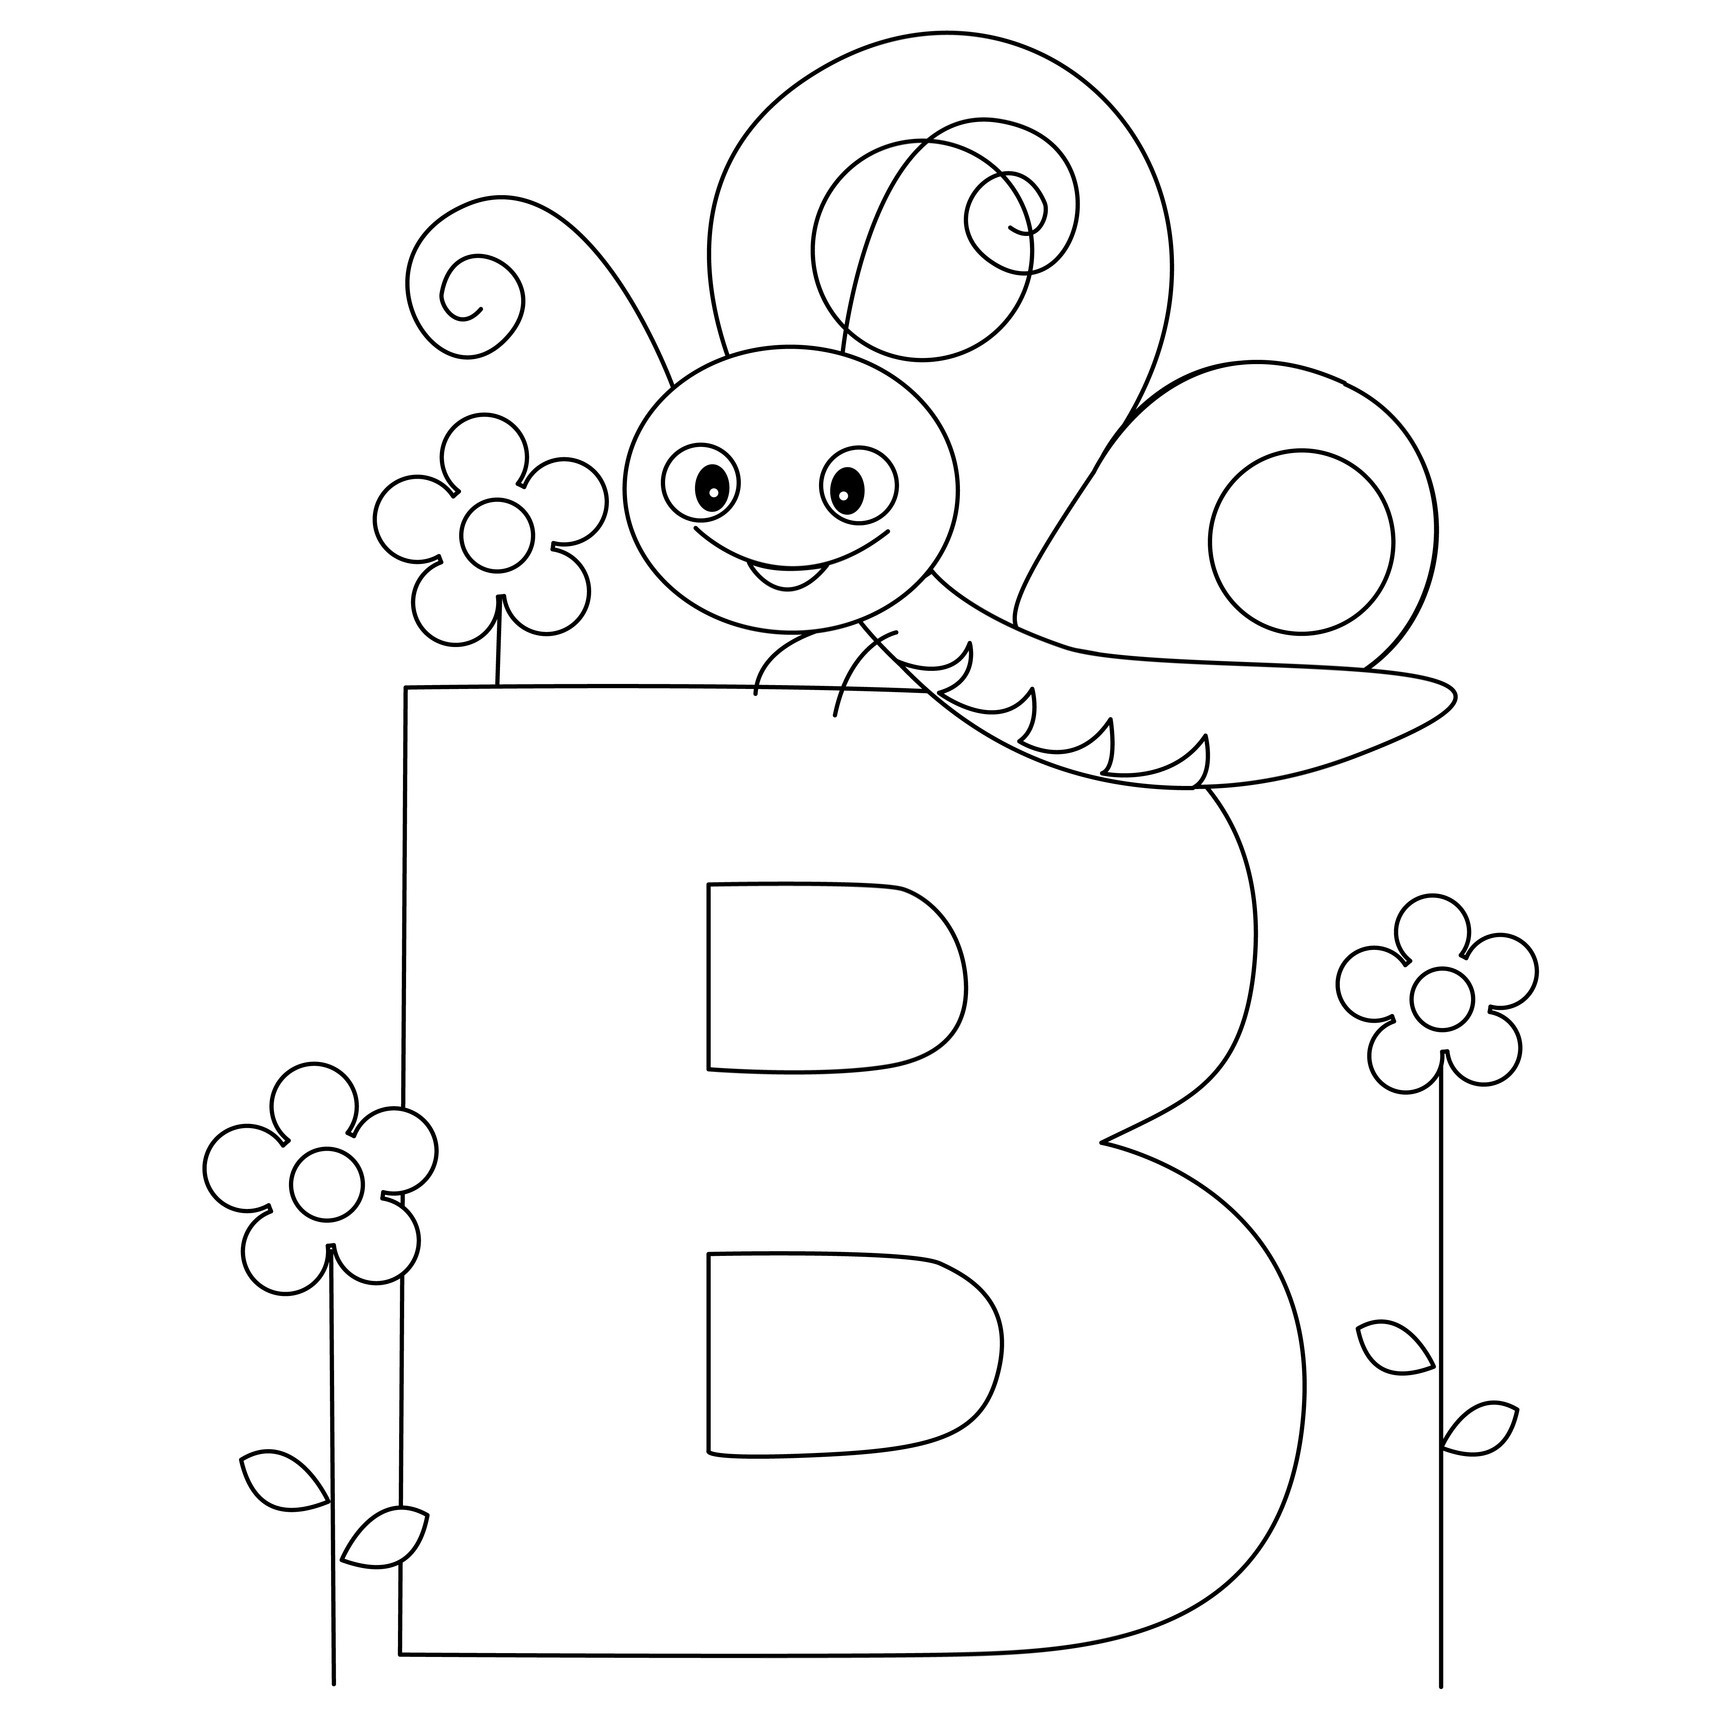 alphabet coloring pages - free printable alphabet coloring pages kids